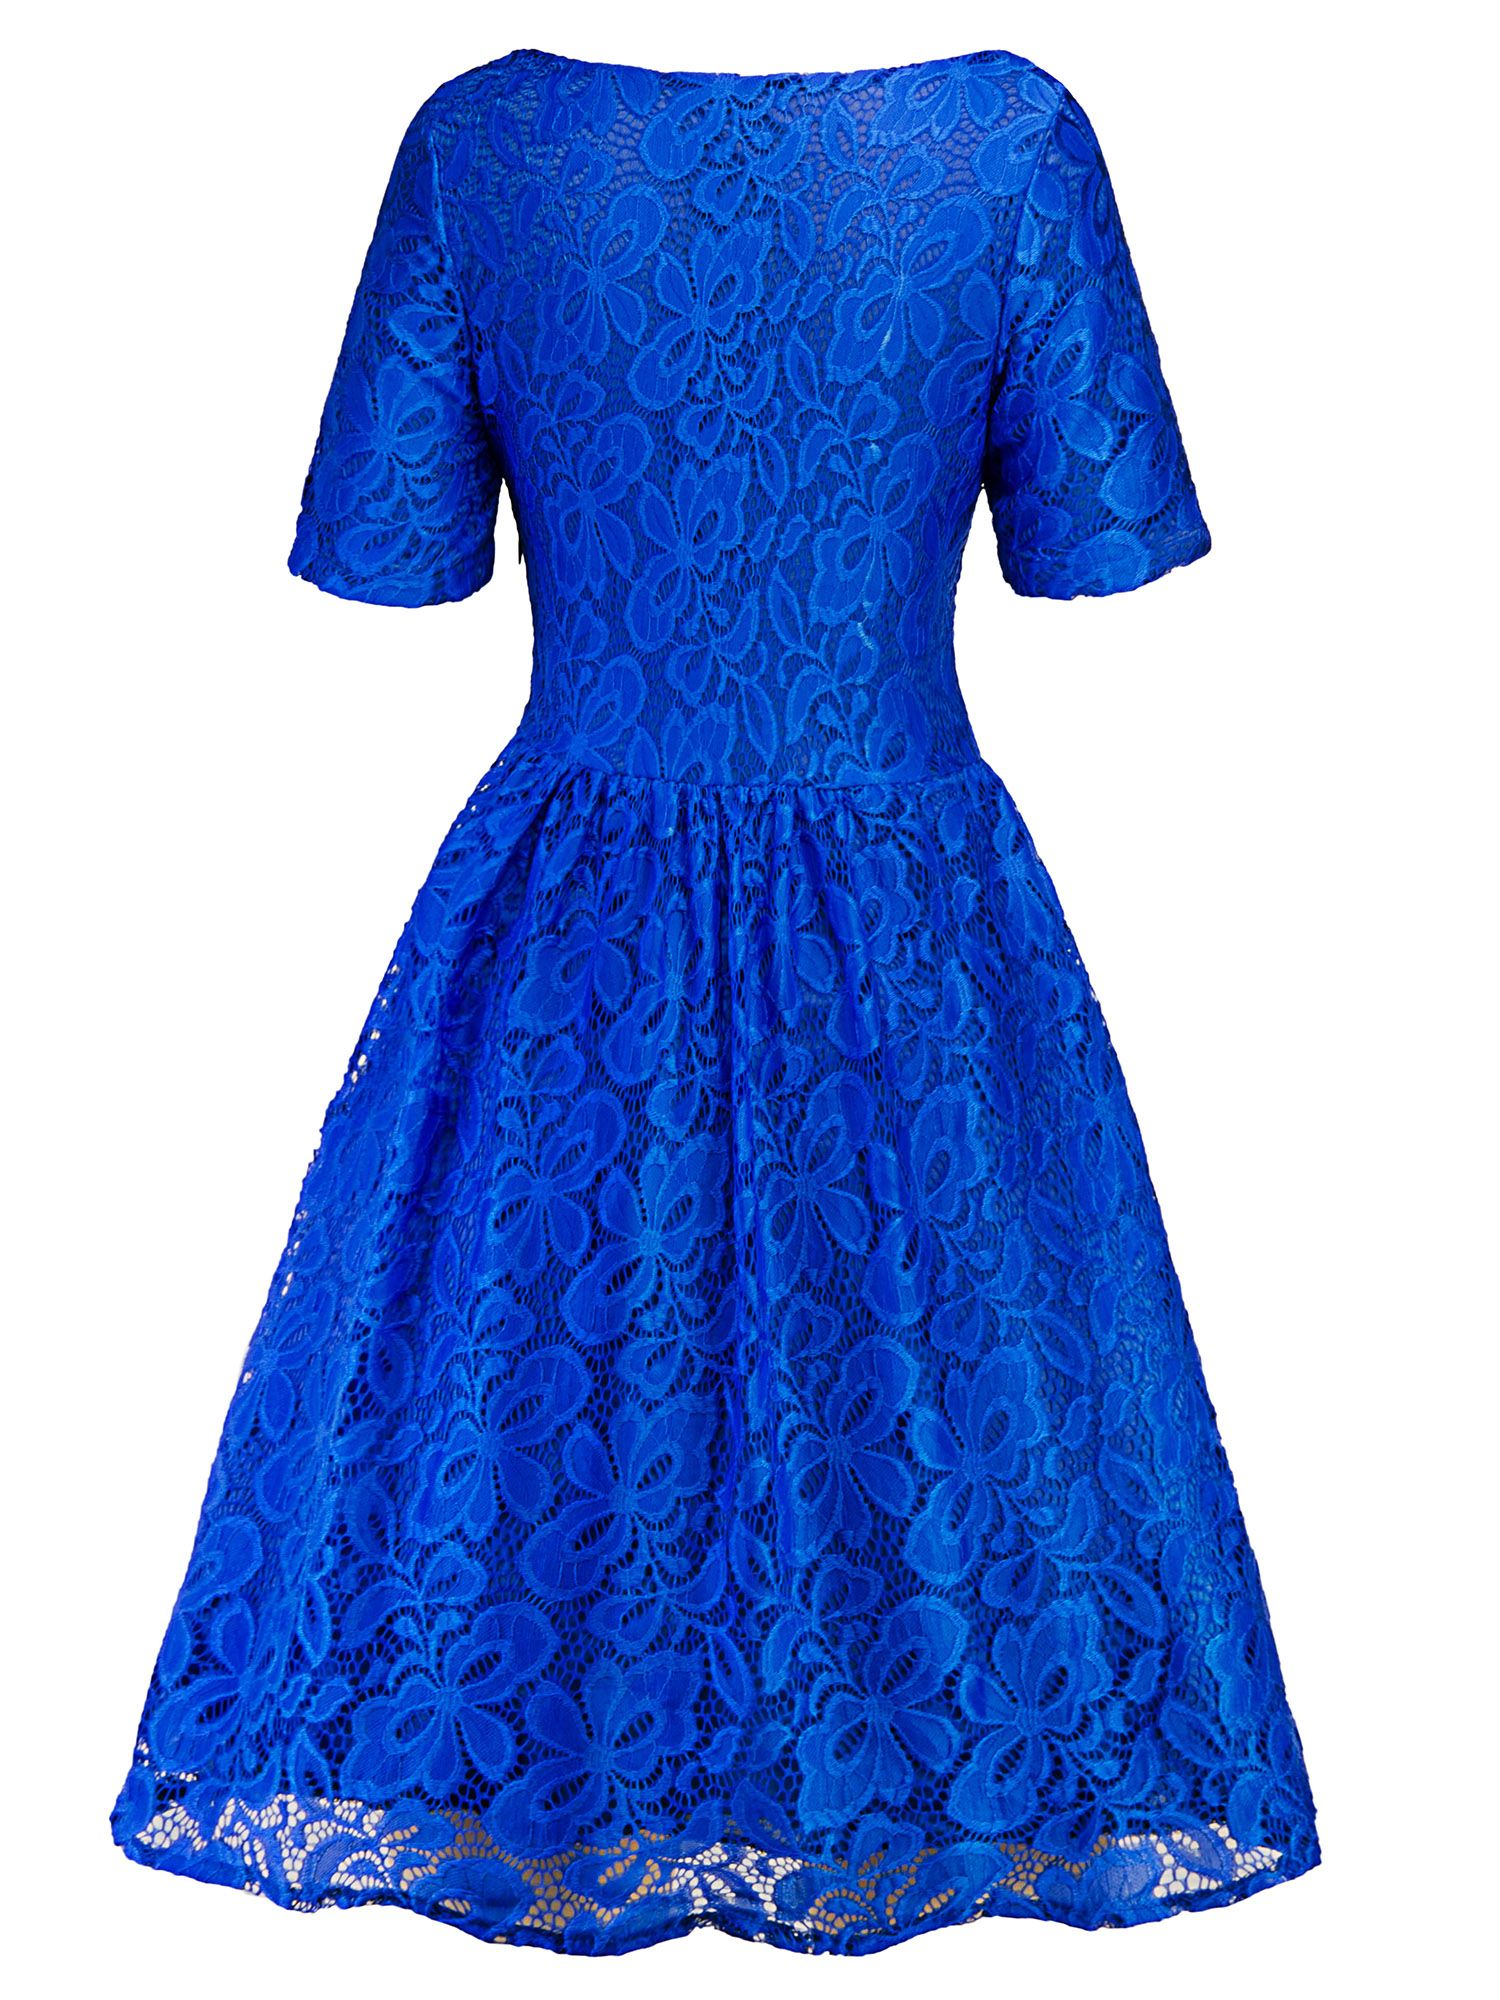 ac156d8286f Lace Dresses for Women Vintage Floral Evening Rockabilly Cocktail Skater  Party Prom Ball Gown Summer Short Sleeve Dress Evening